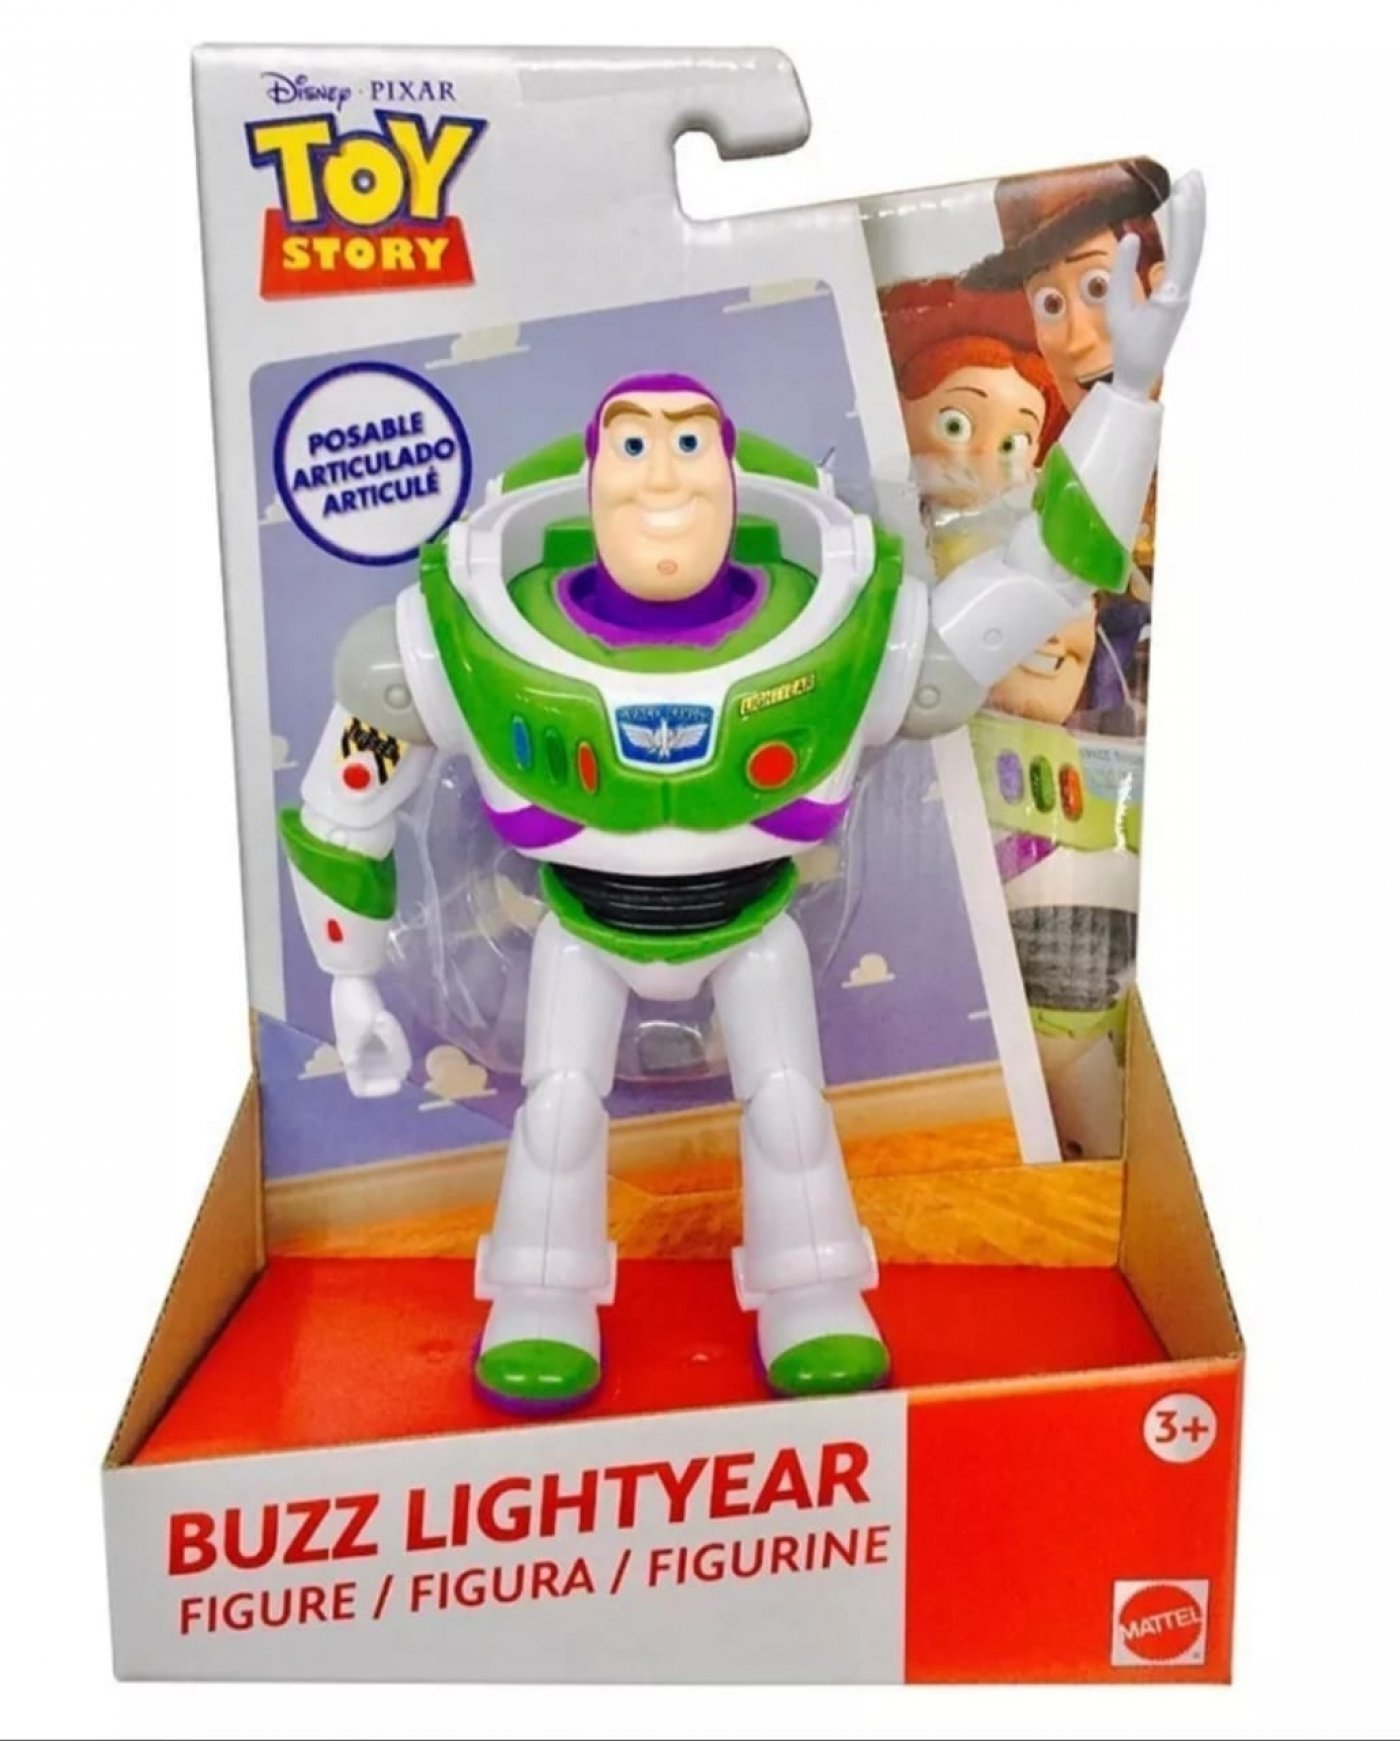 Buzz Lightyear Articulado,!! Toy Story